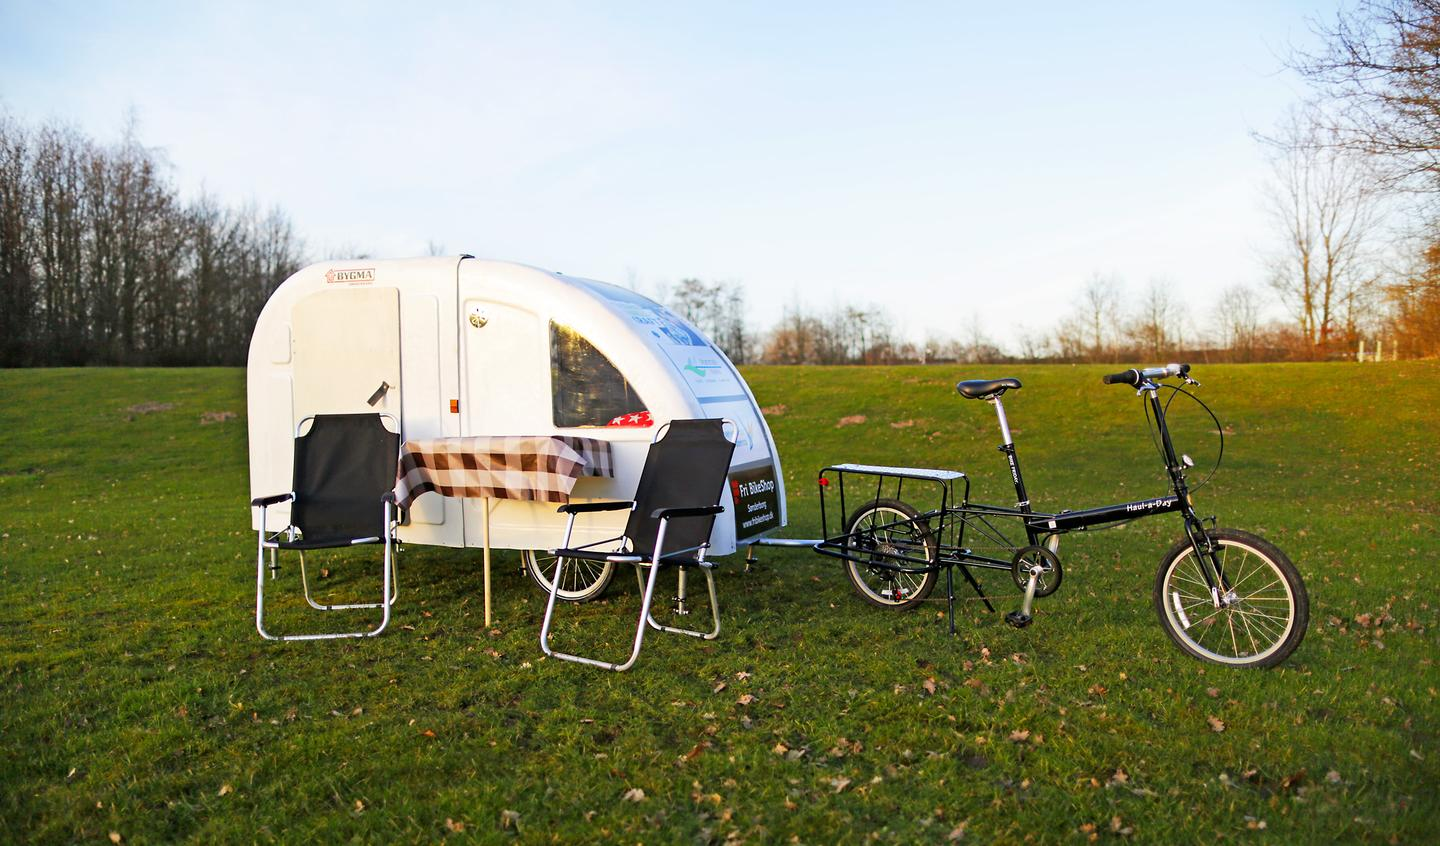 There are lots of optional extras available, including different colors, a solar power package, kitchen, and extra bicycle attachment (Photo: Wide Path Camper)